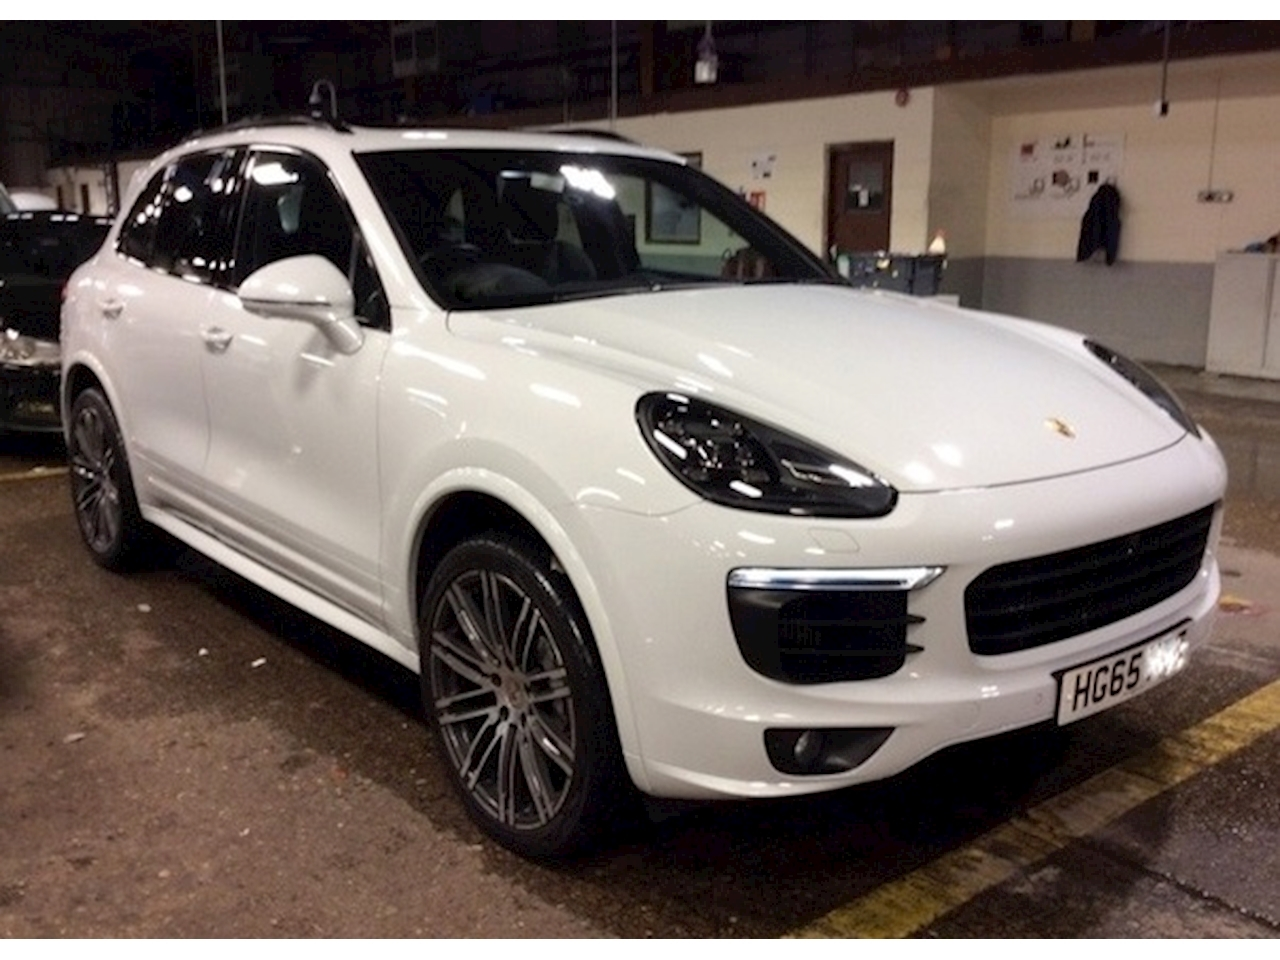 Cayenne 3.0 D V6 Tiptronic S Estate Automatic Diesel